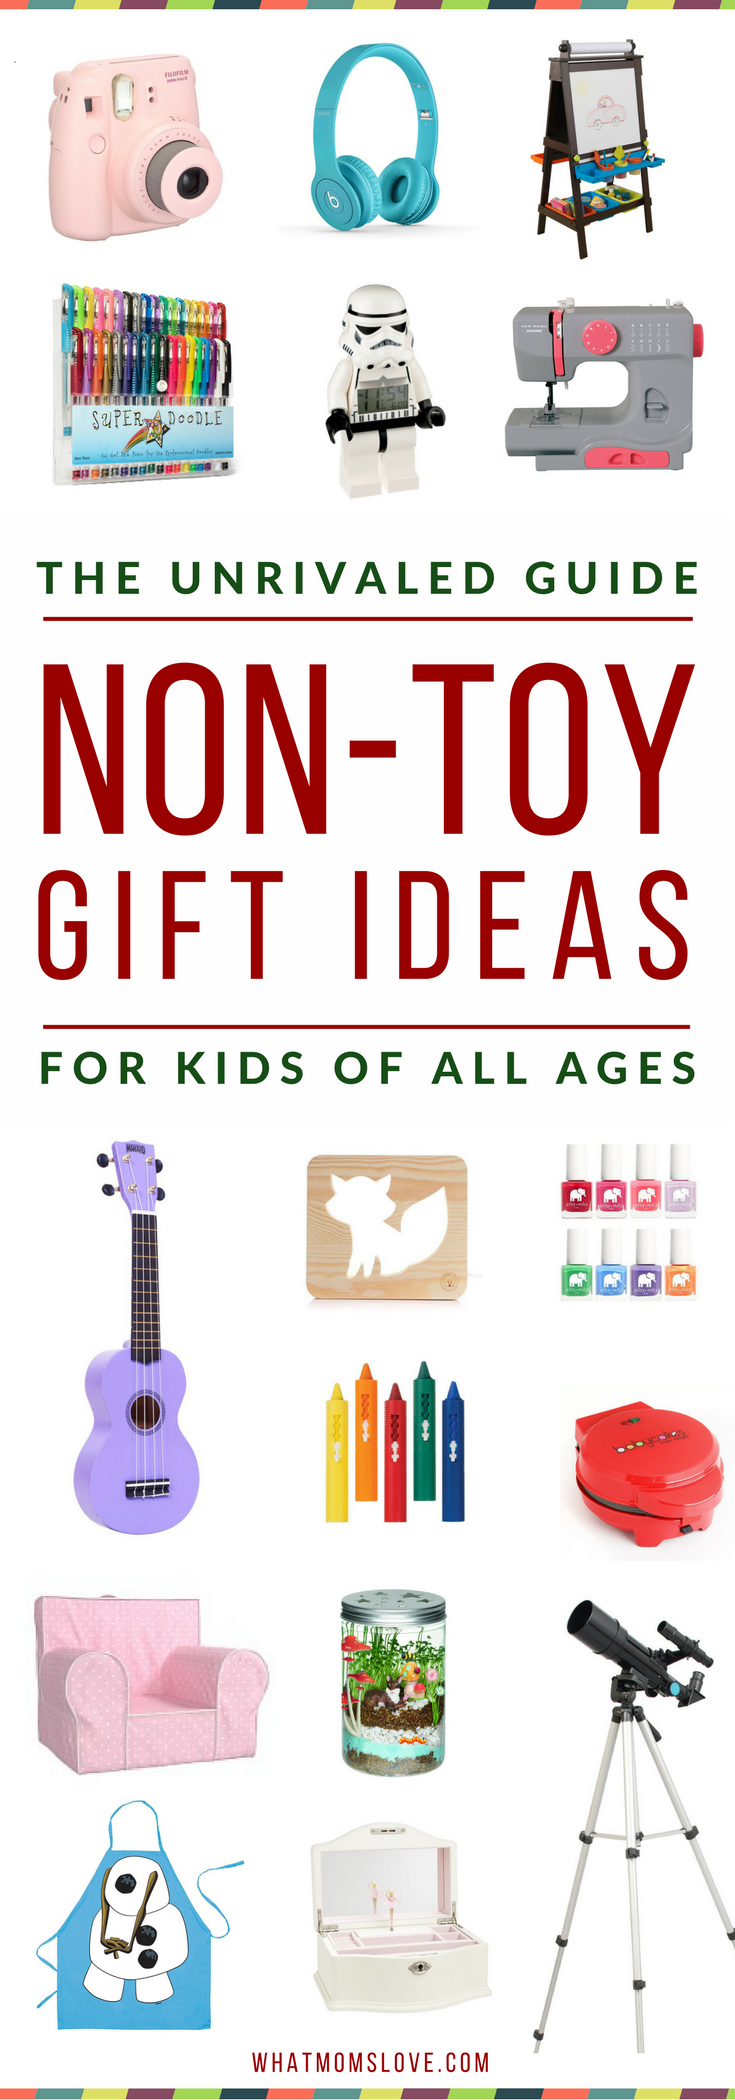 overloaded with toys learn over 200 incredible gift ideas for kids that arent toys in this awesome non toy gift guide perfect for toddlers to tweens and